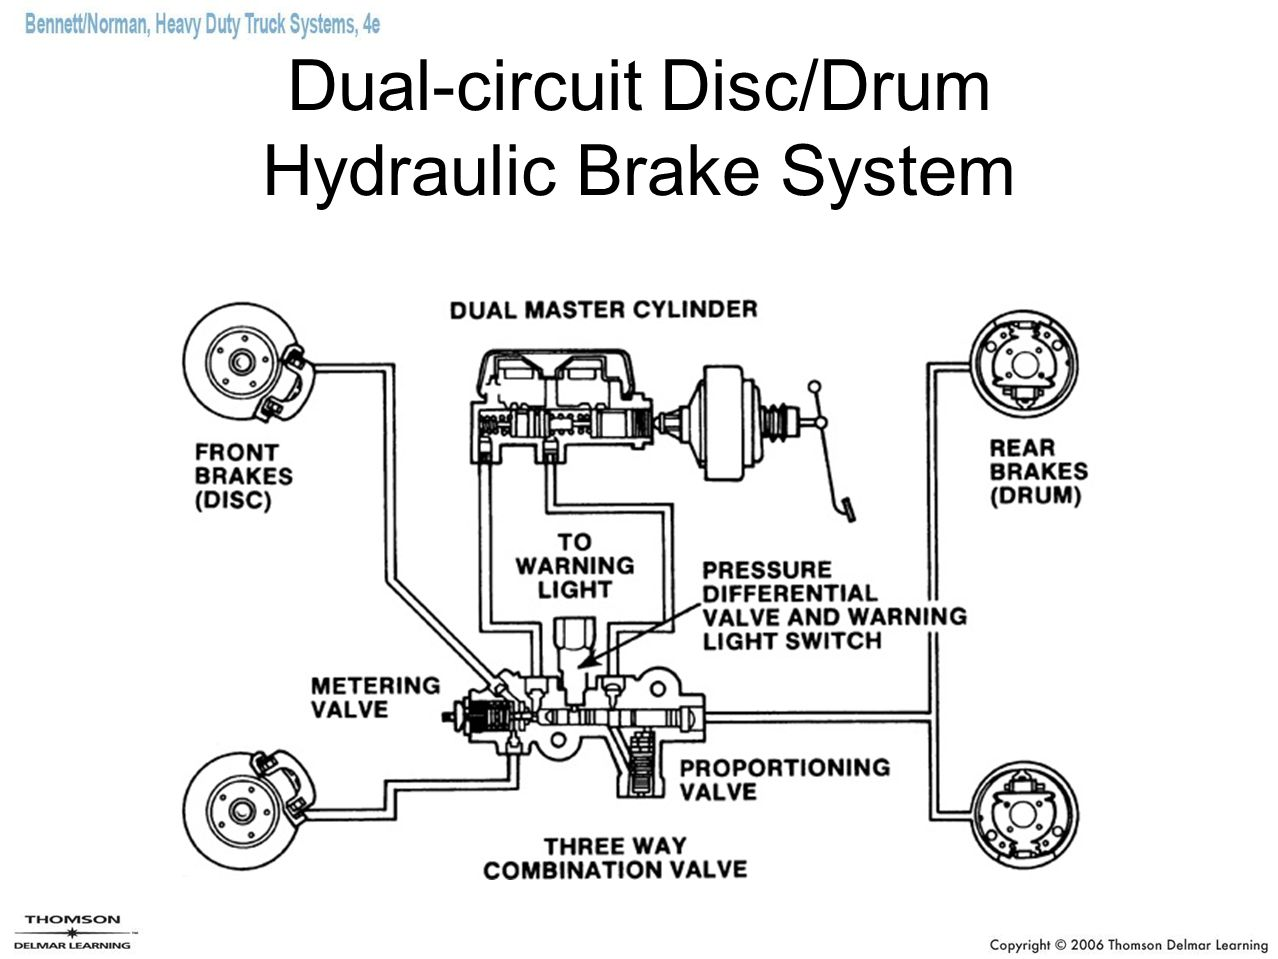 Dual-circuit Disc/Drum Hydraulic Brake System